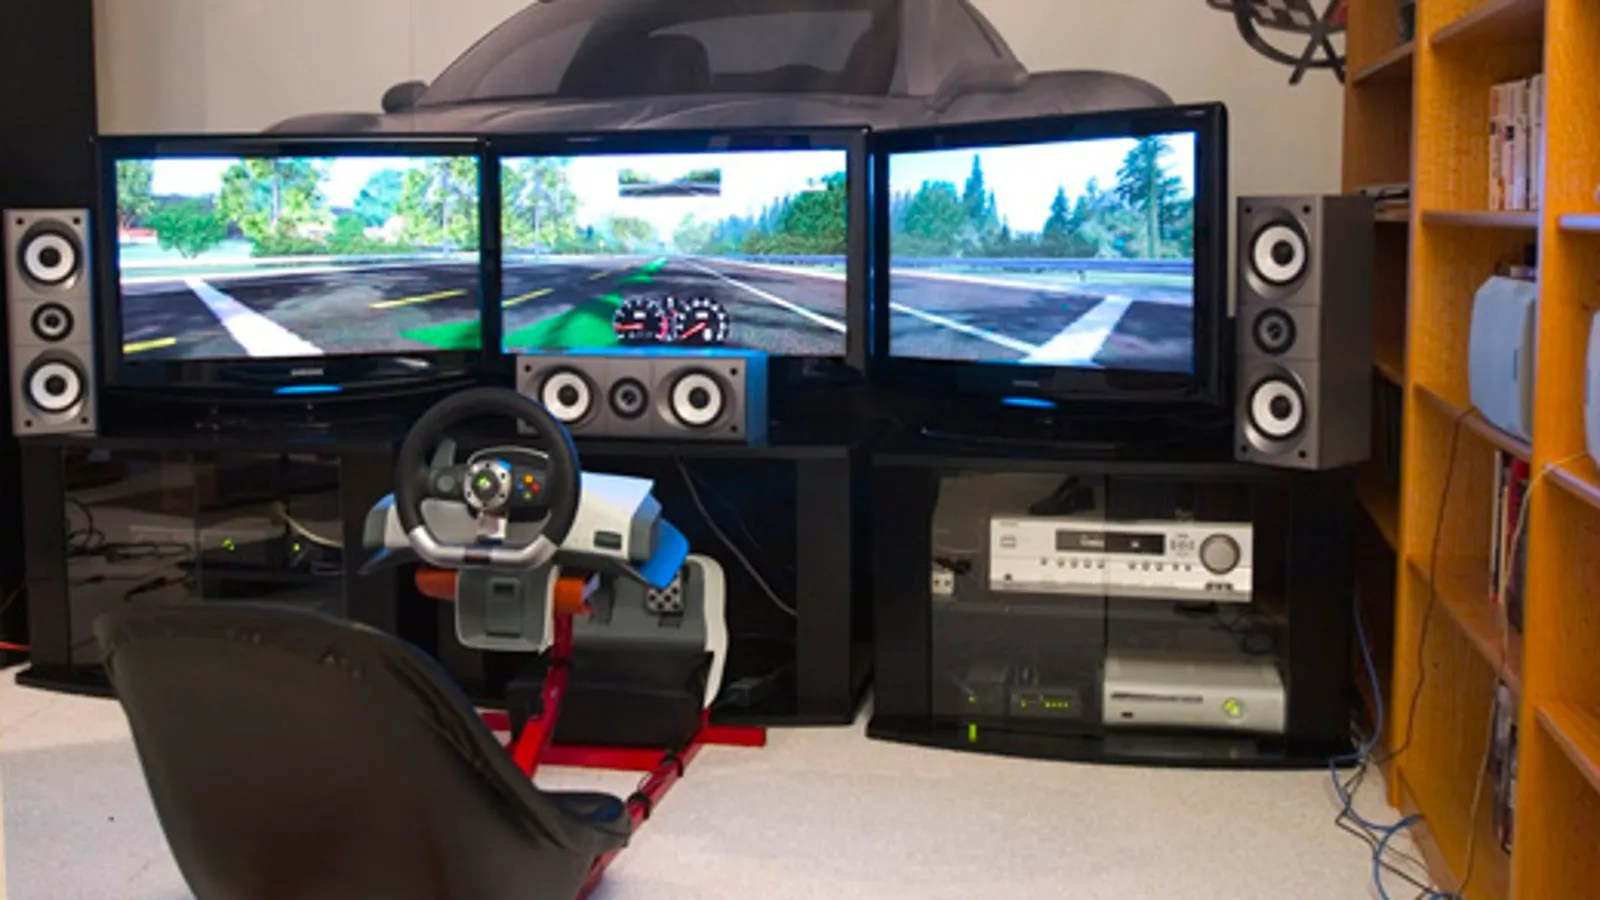 driving simulator chair savannah's cover rentals & events the ultimate xbox 360 racing setup